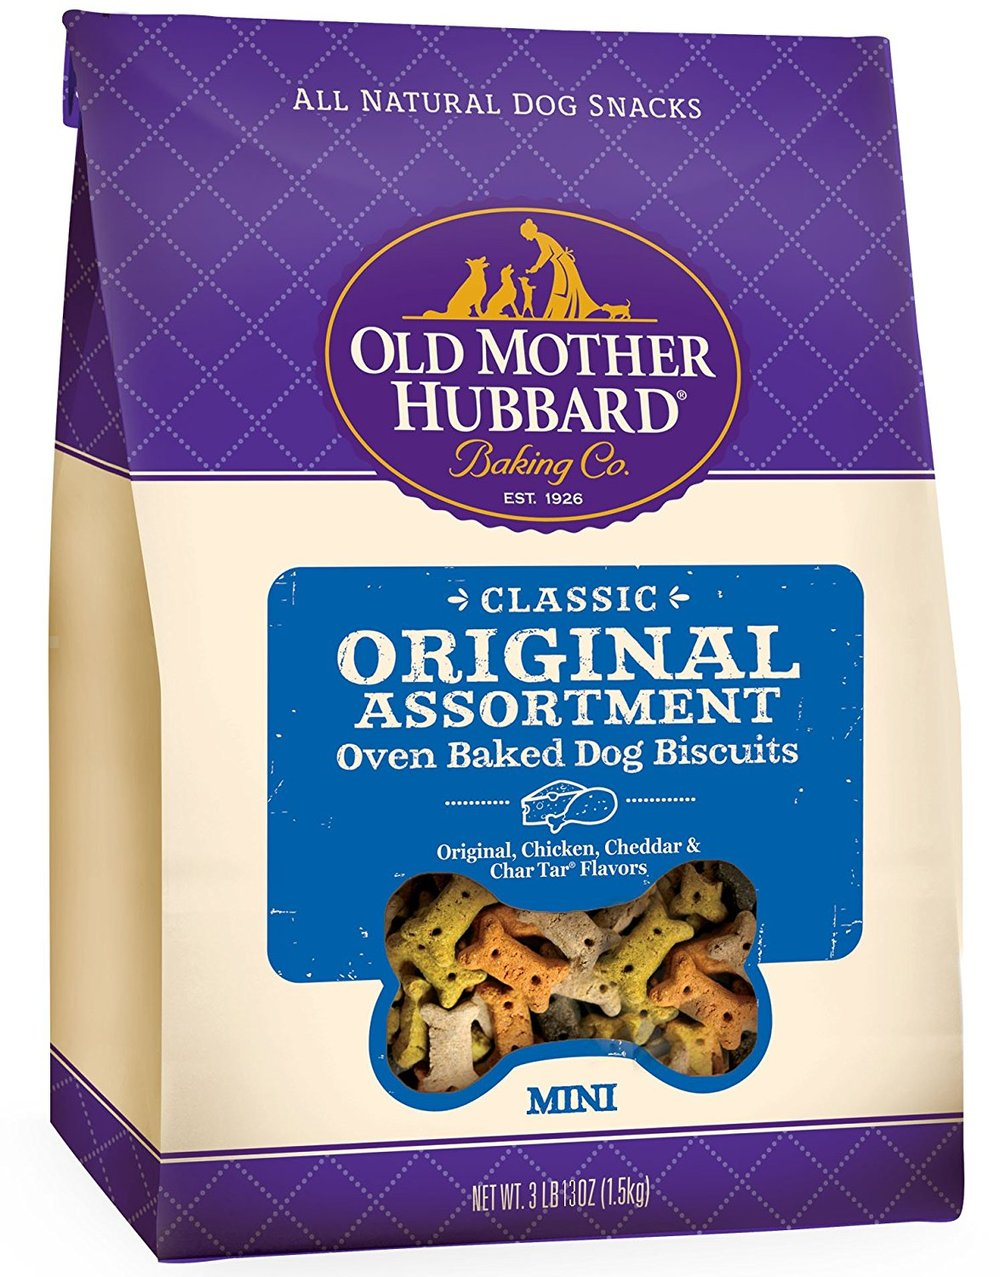 Old Mother Hubbard Classic Crunchy Natural Dog Treats, Original Assortment Mini Biscuits, 3.8-Pound Bag.jpg